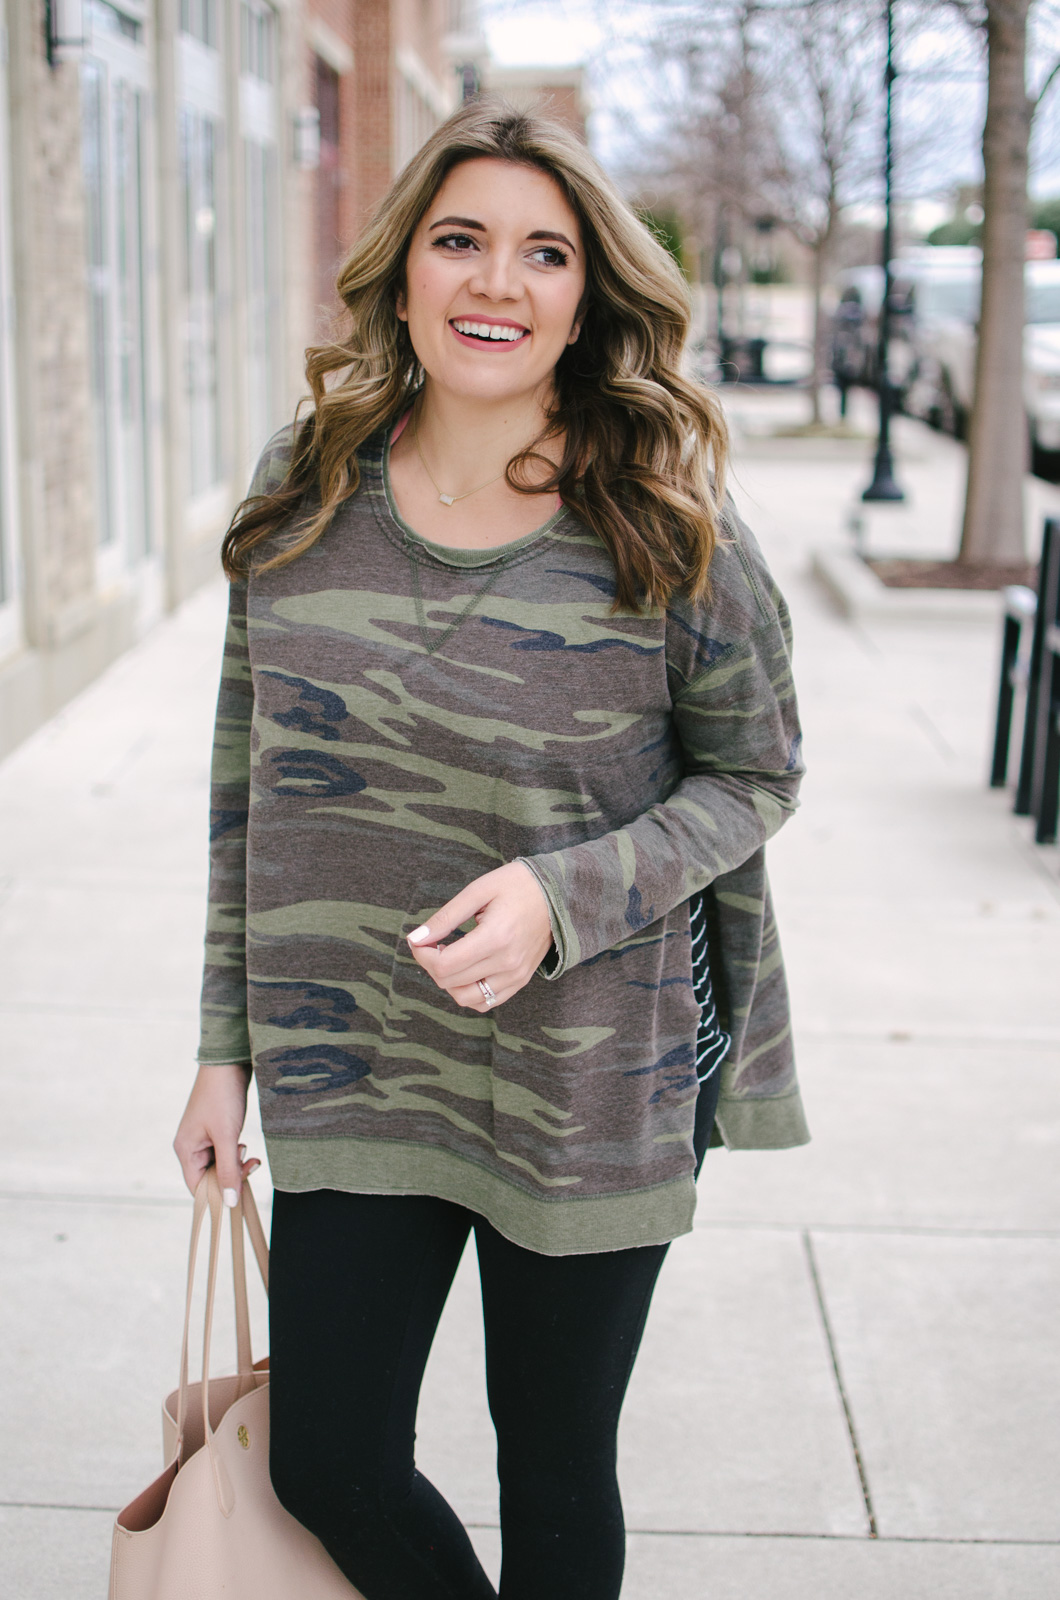 how to wear camo and stripes - my current fav winter leggings outfit | Get all the outfit details or see more cute leggings outfits at bylaurenm.com!